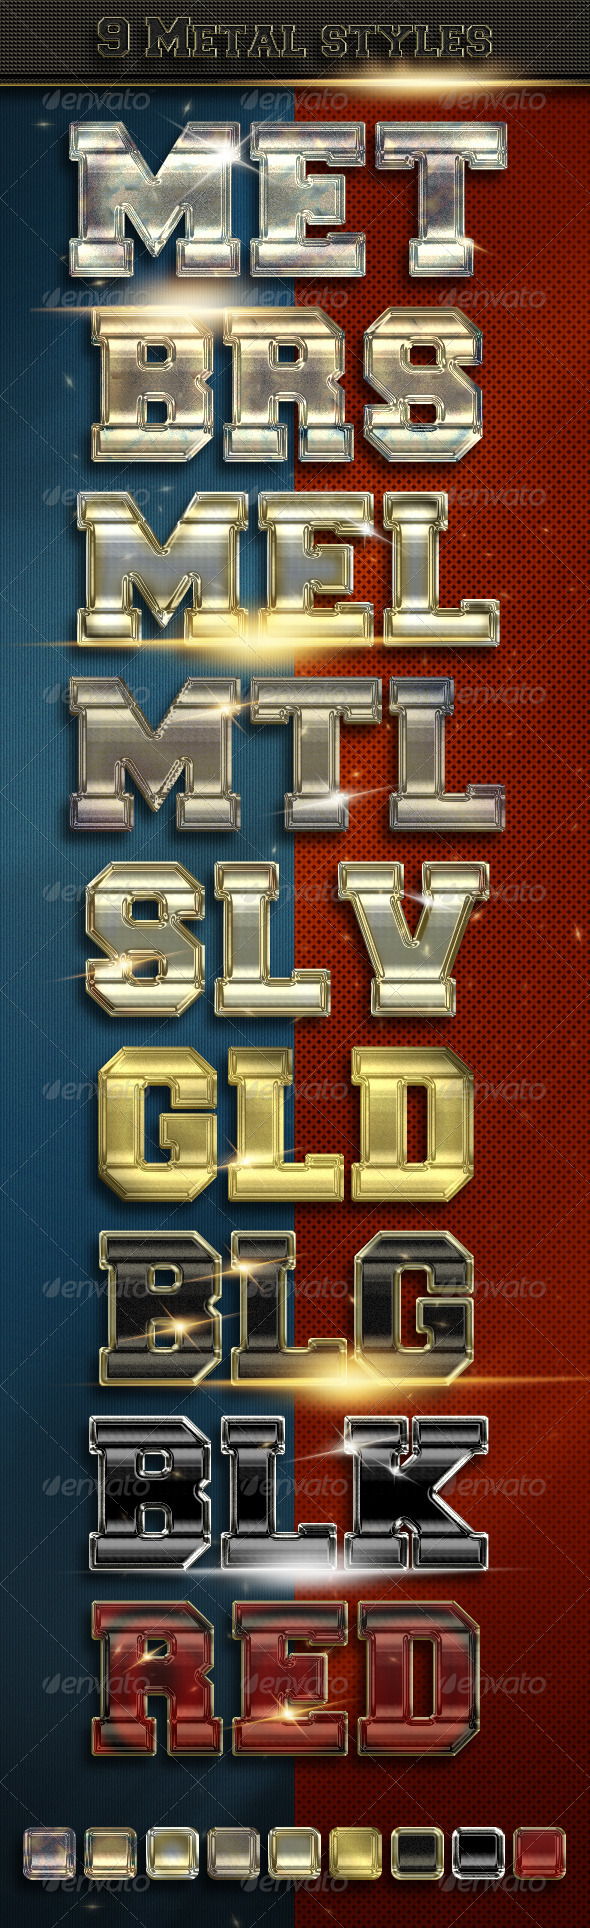 9 Metal Text Styles - Vol. 2 - Add-ons